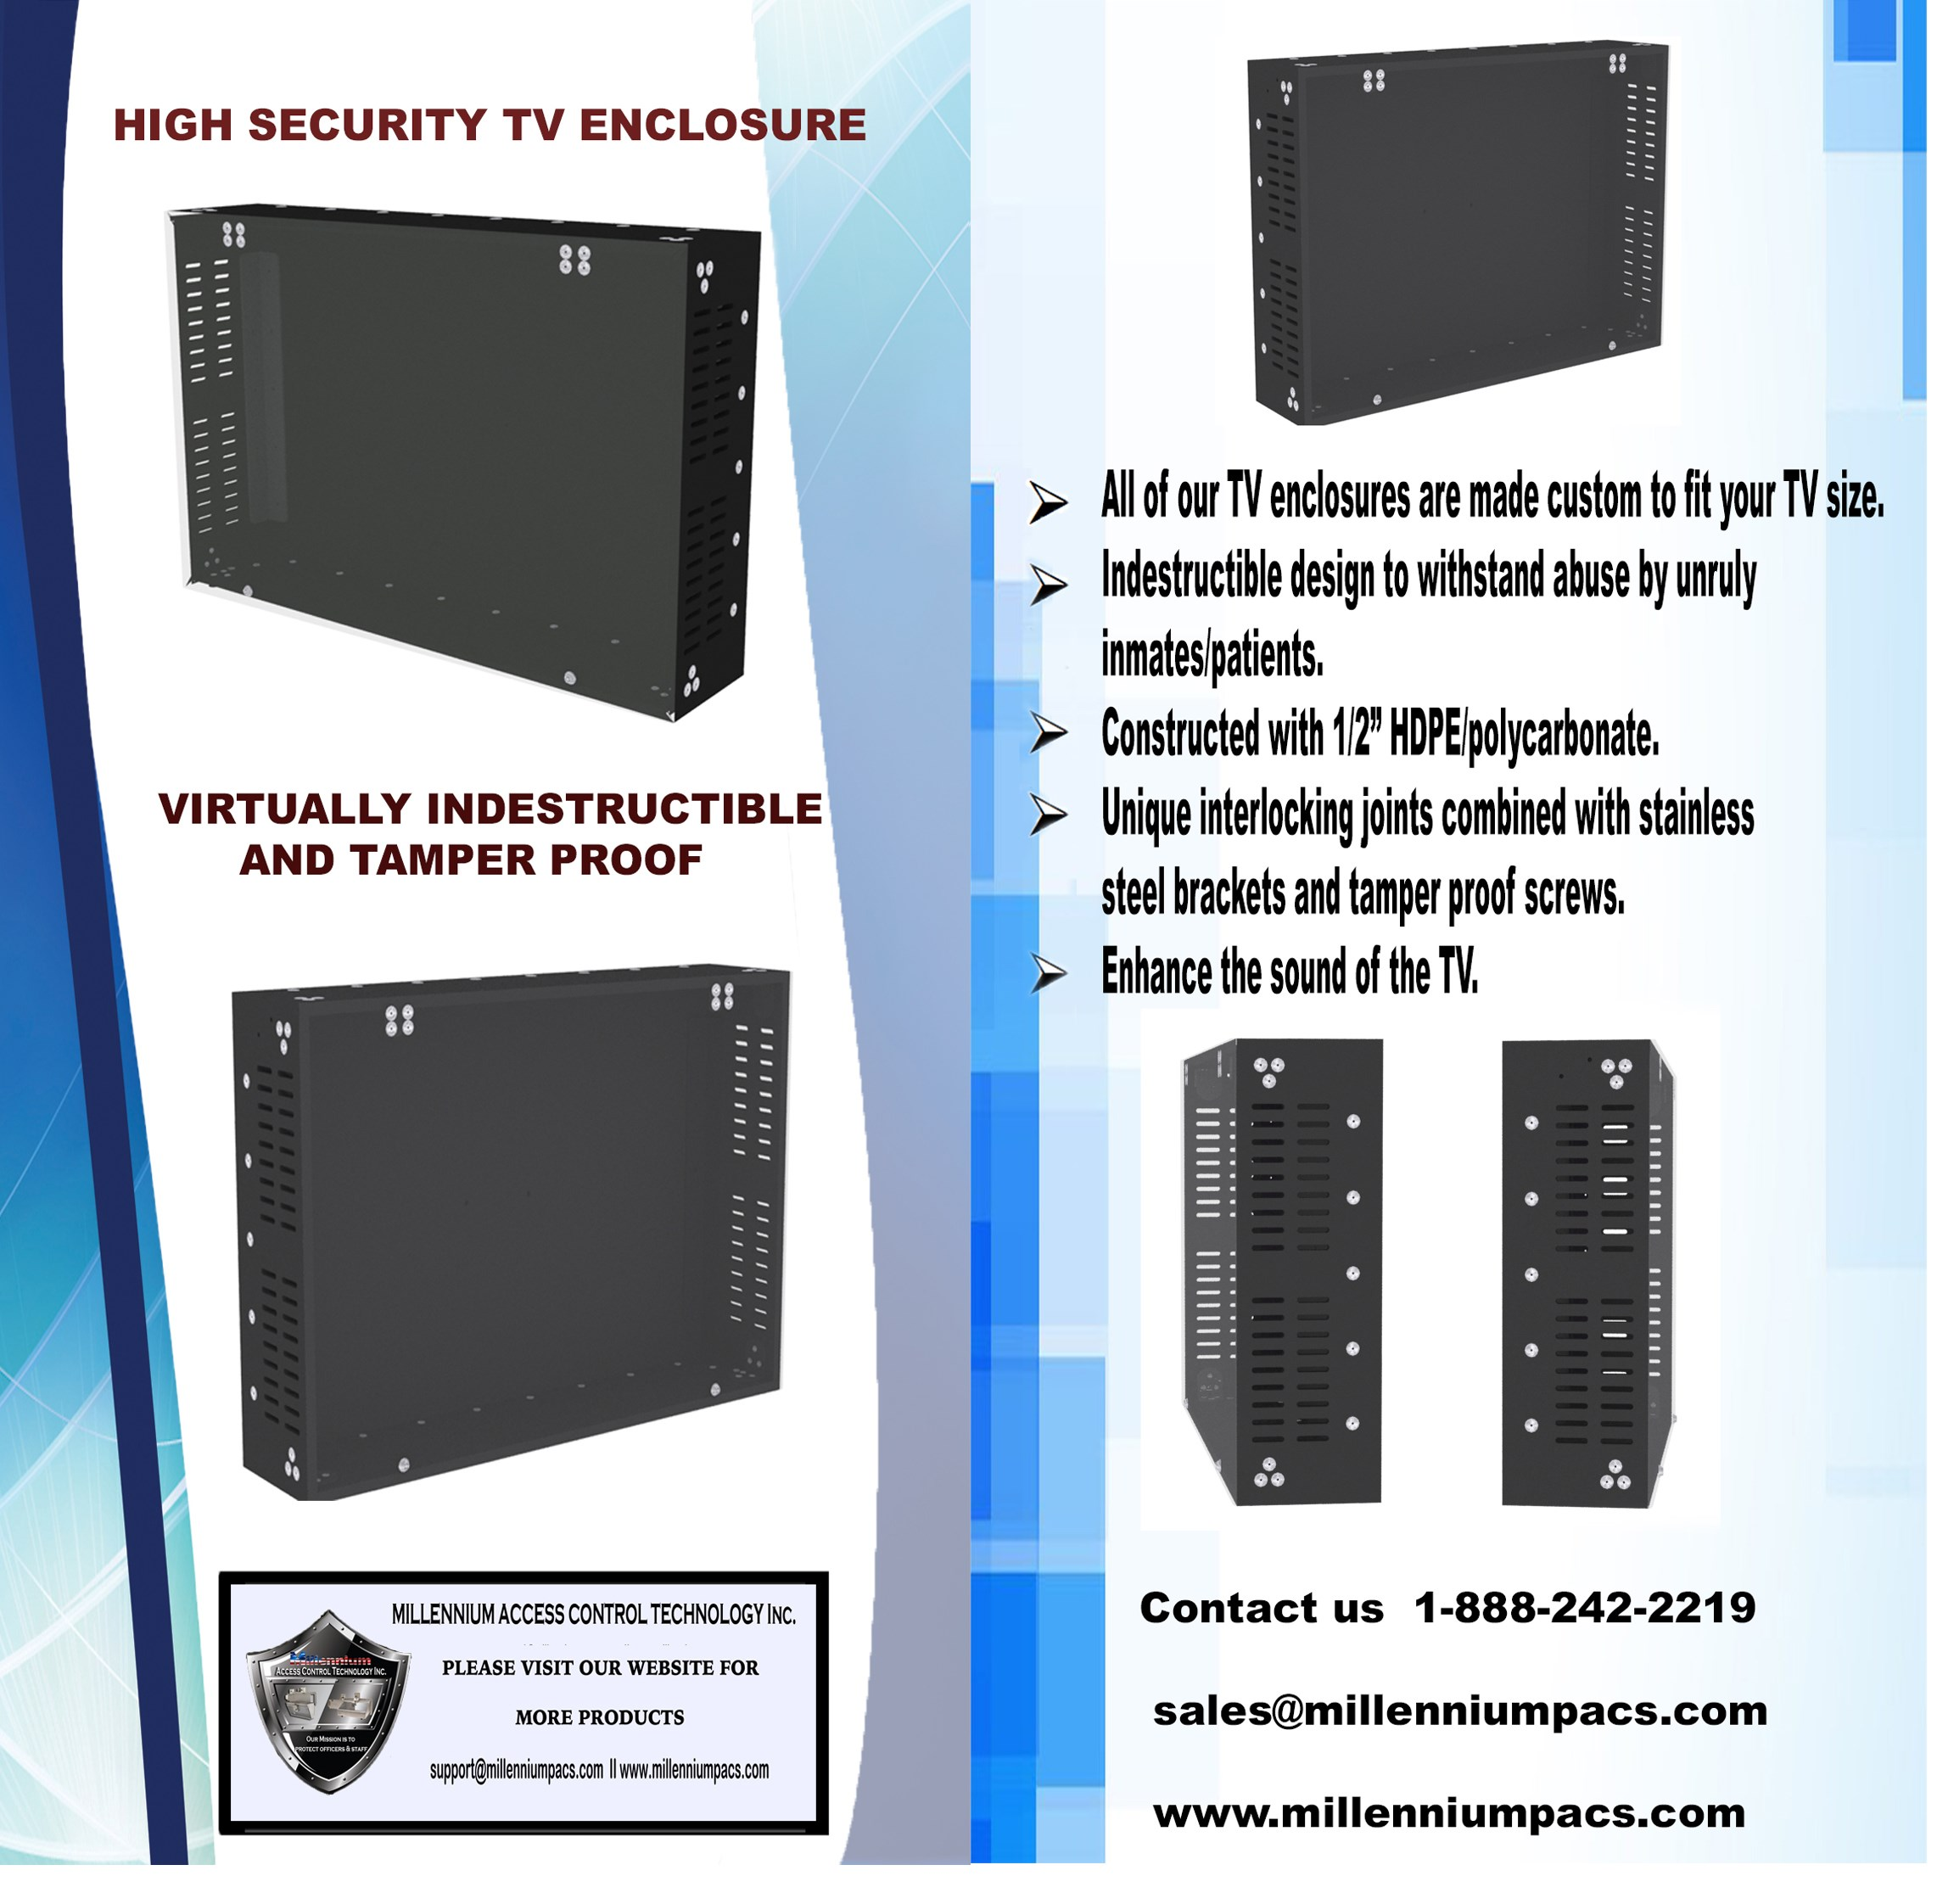 High Security TV Enclosure